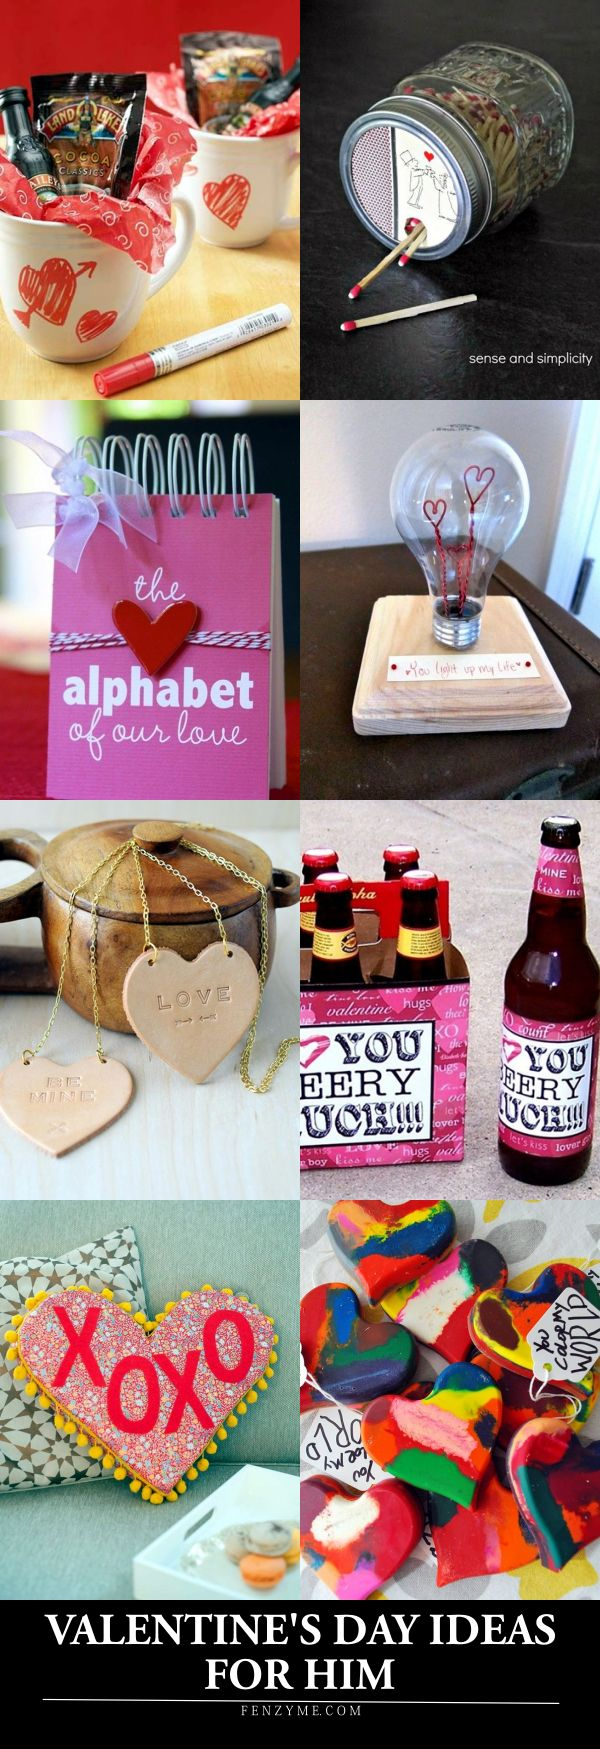 101 homemade valentines day ideas for him thatre really cute - Valentines Day Present For Boyfriend